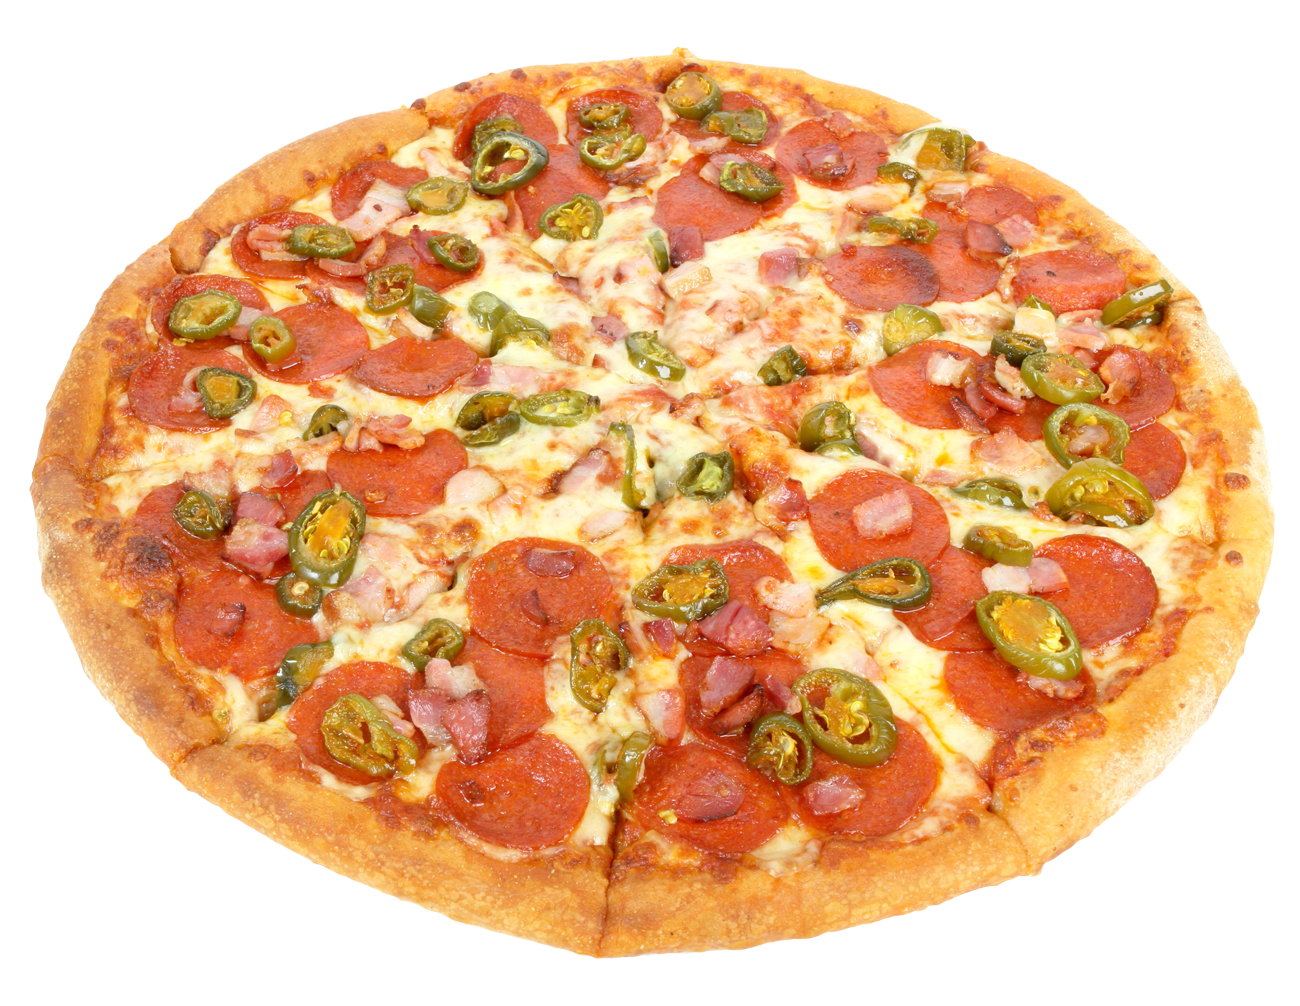 pizza transparent image pictures #7965